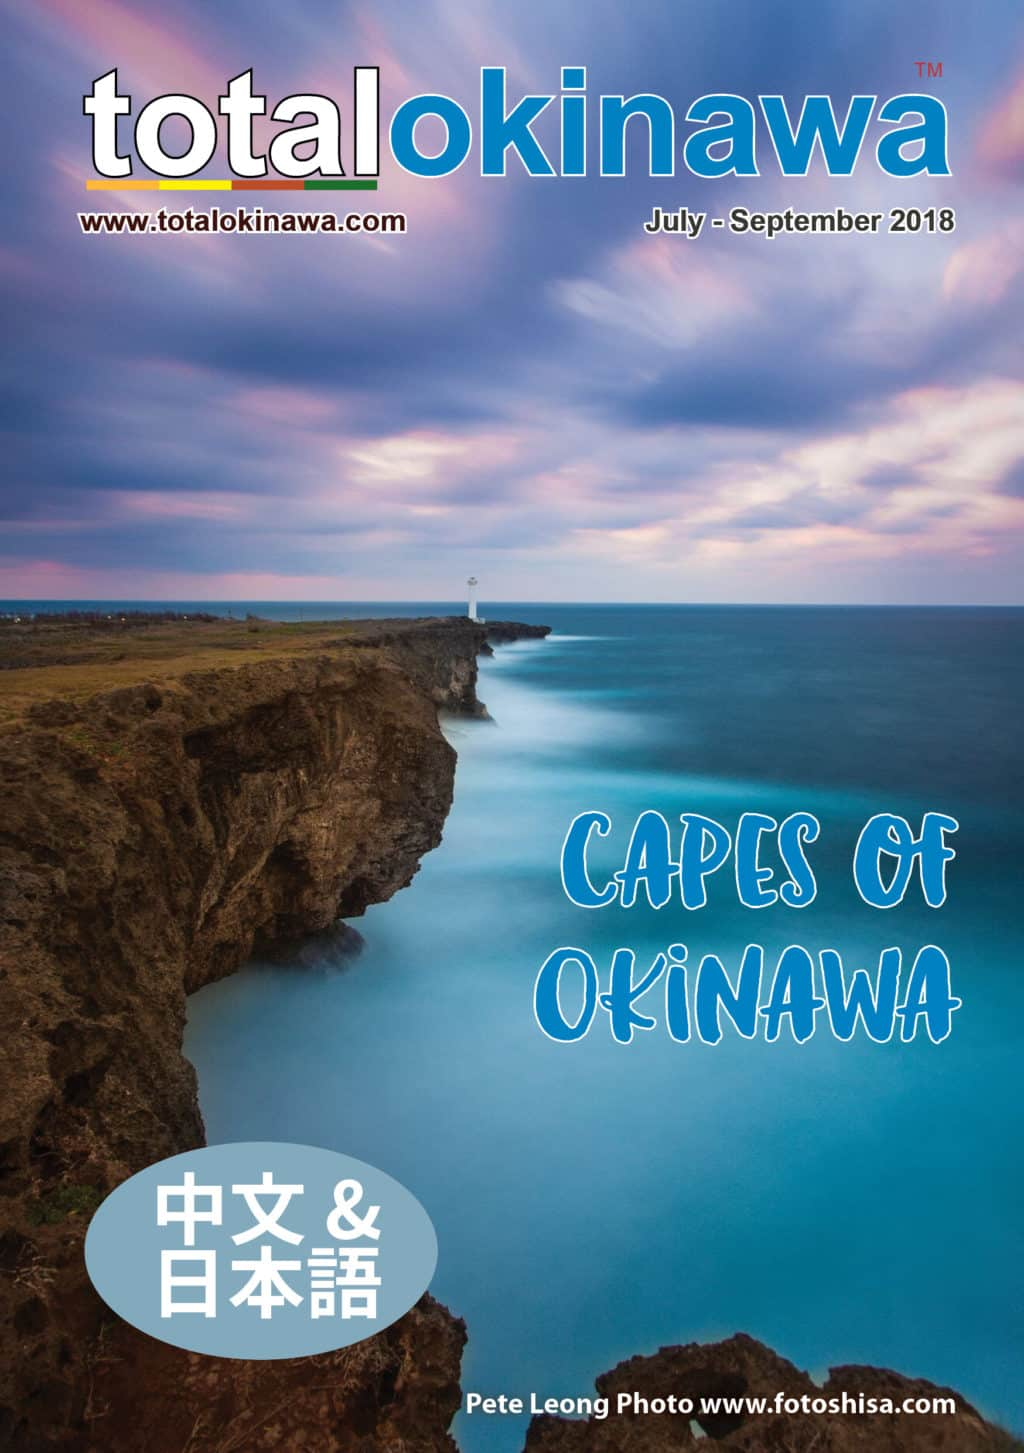 Total Okinawa Magazine July 2018 Cover - Capes of Okinawa